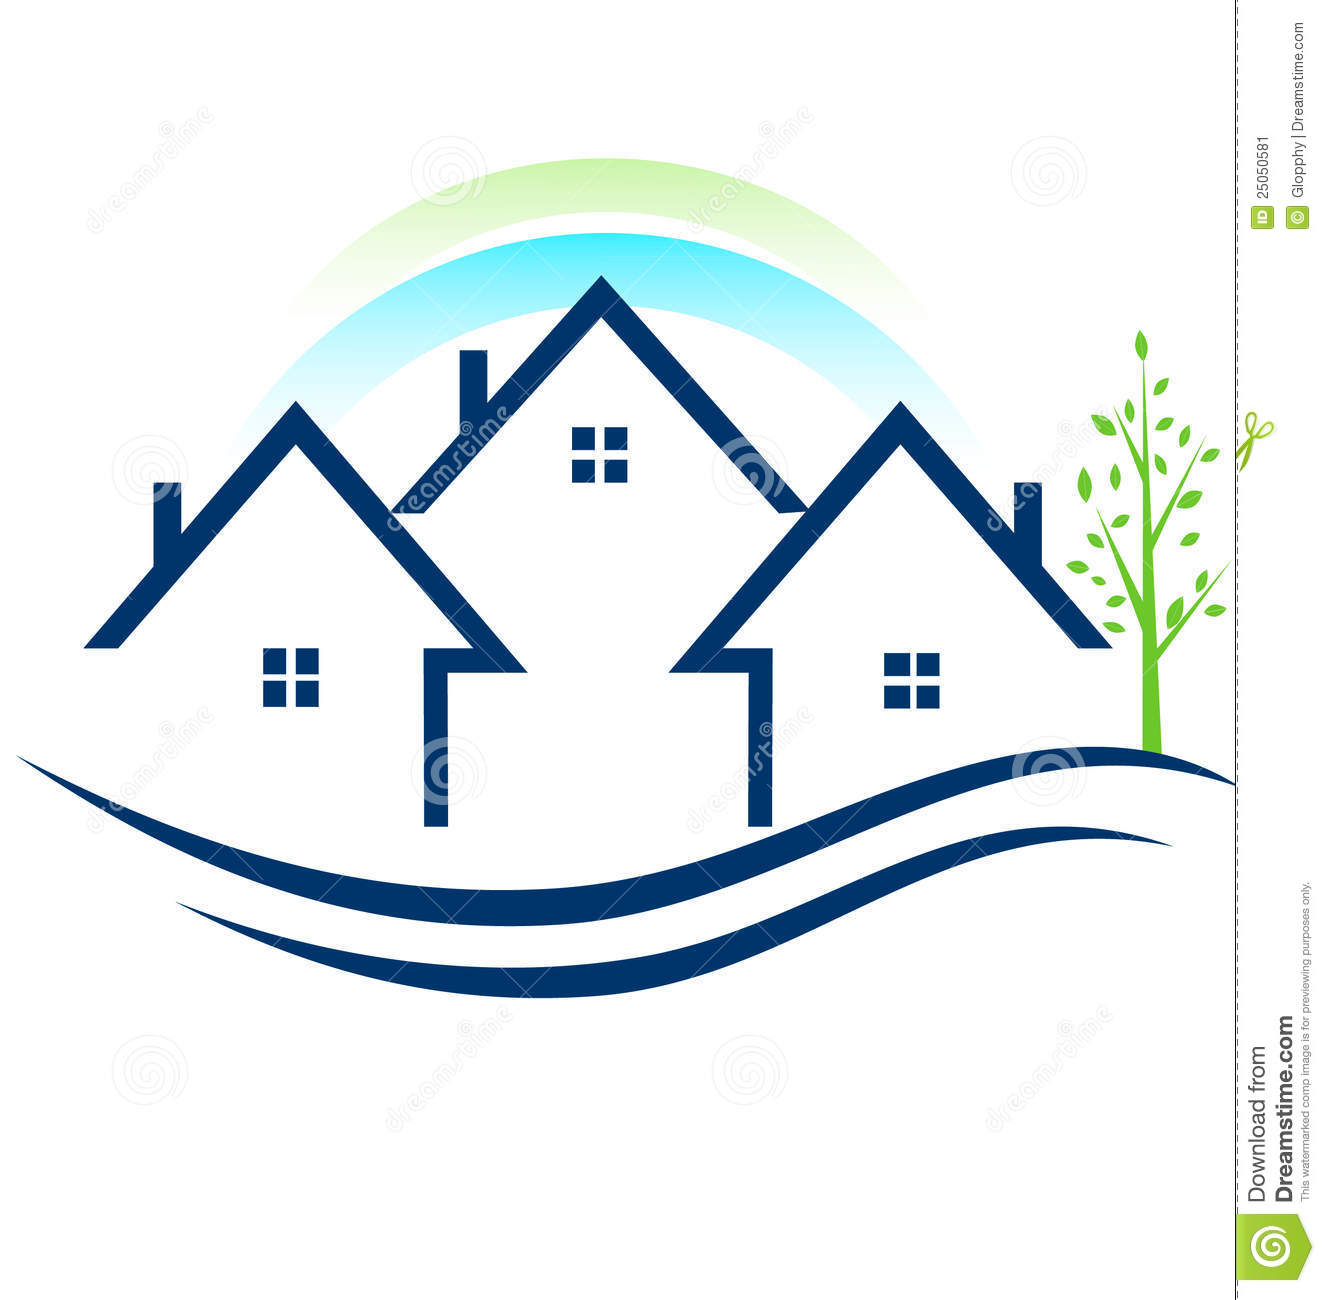 Houses Apartments With Tree Logo Stock Vector ...